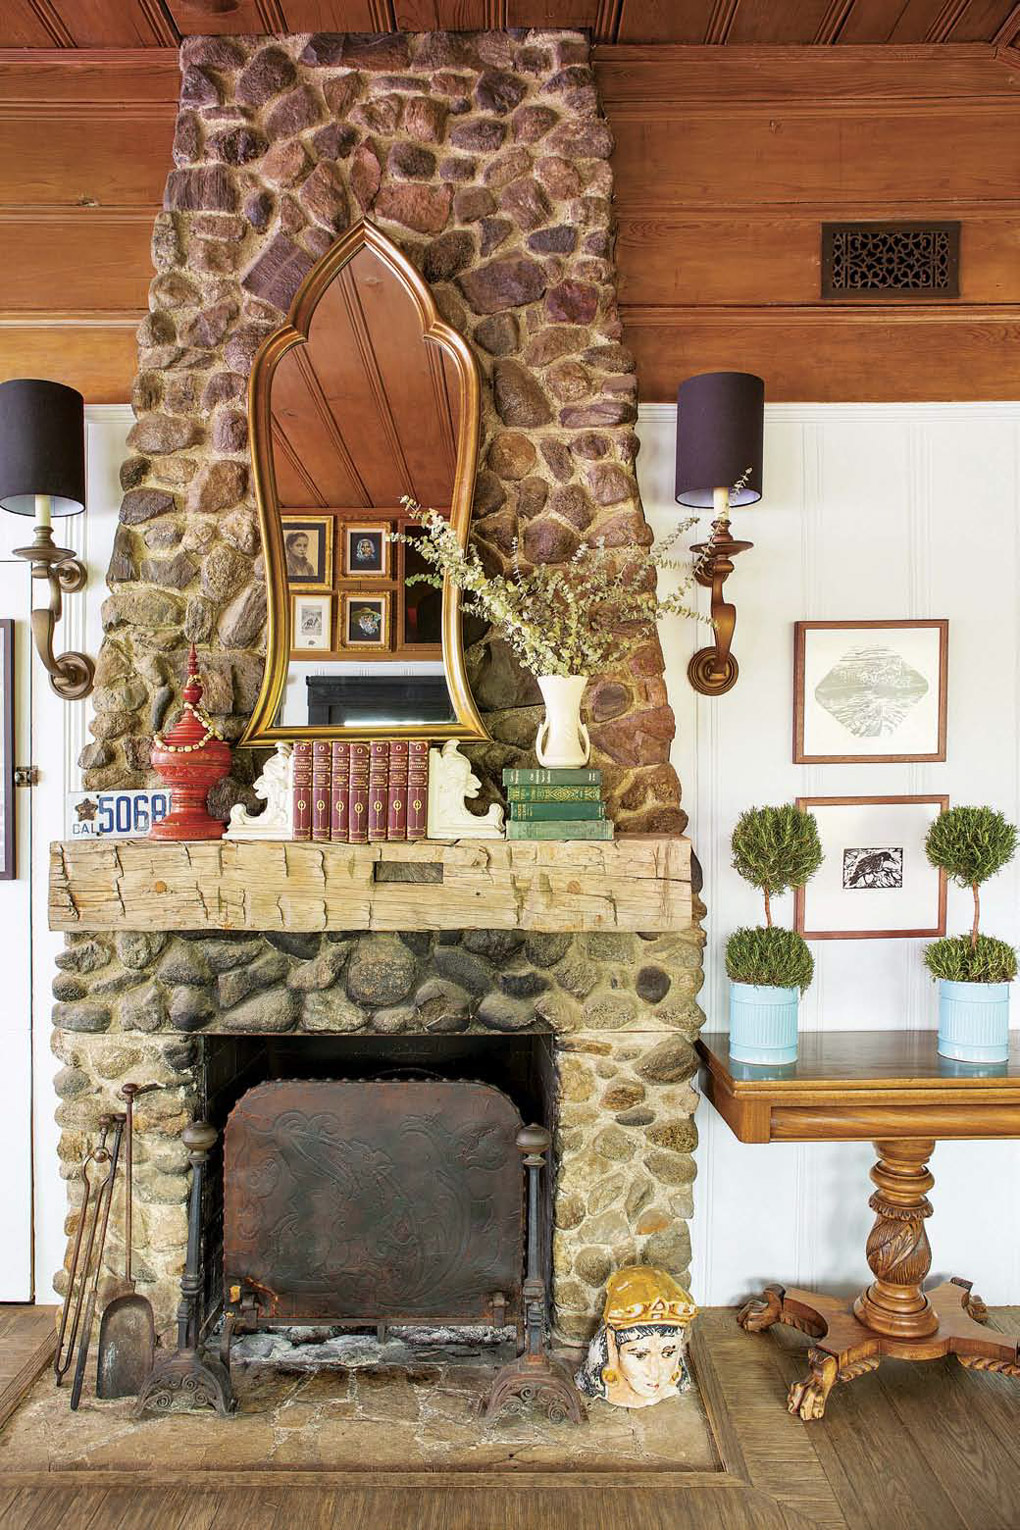 Floor to ceiling stone fireplace with a distressed wooden mantle and a gold-trimmed mirror above it.